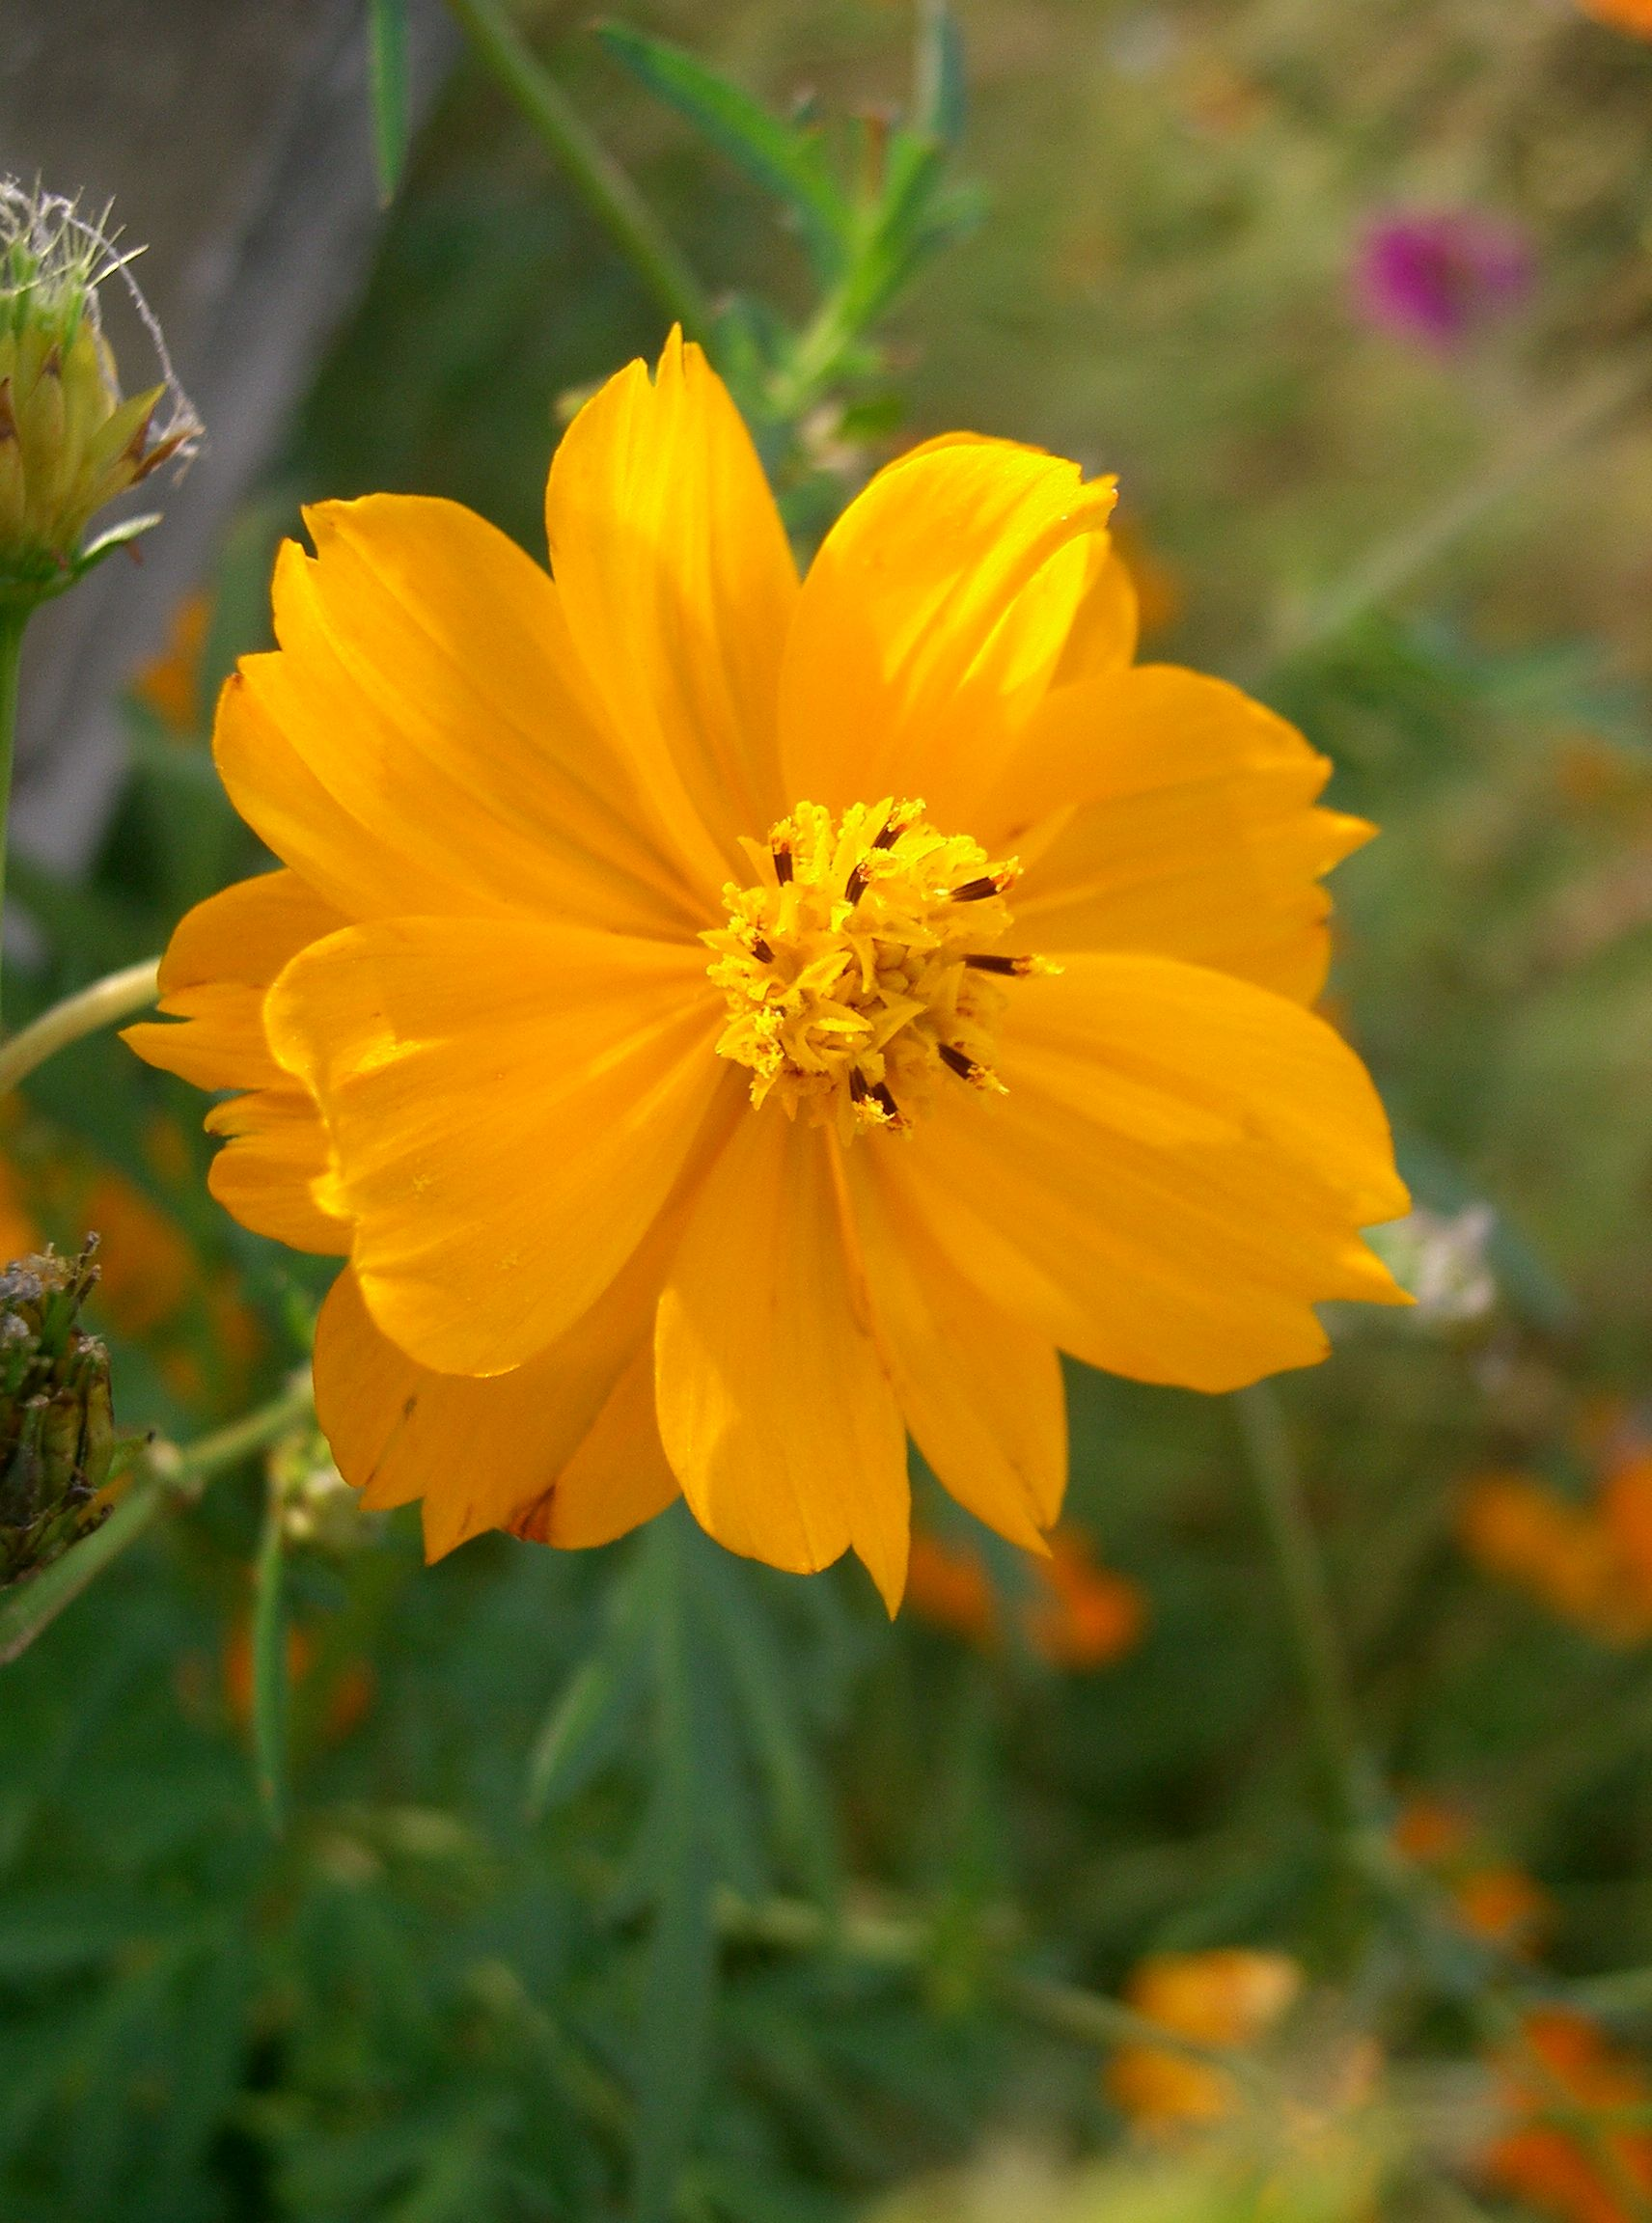 The Cosmos flower is the symbol of World Kindness Day.